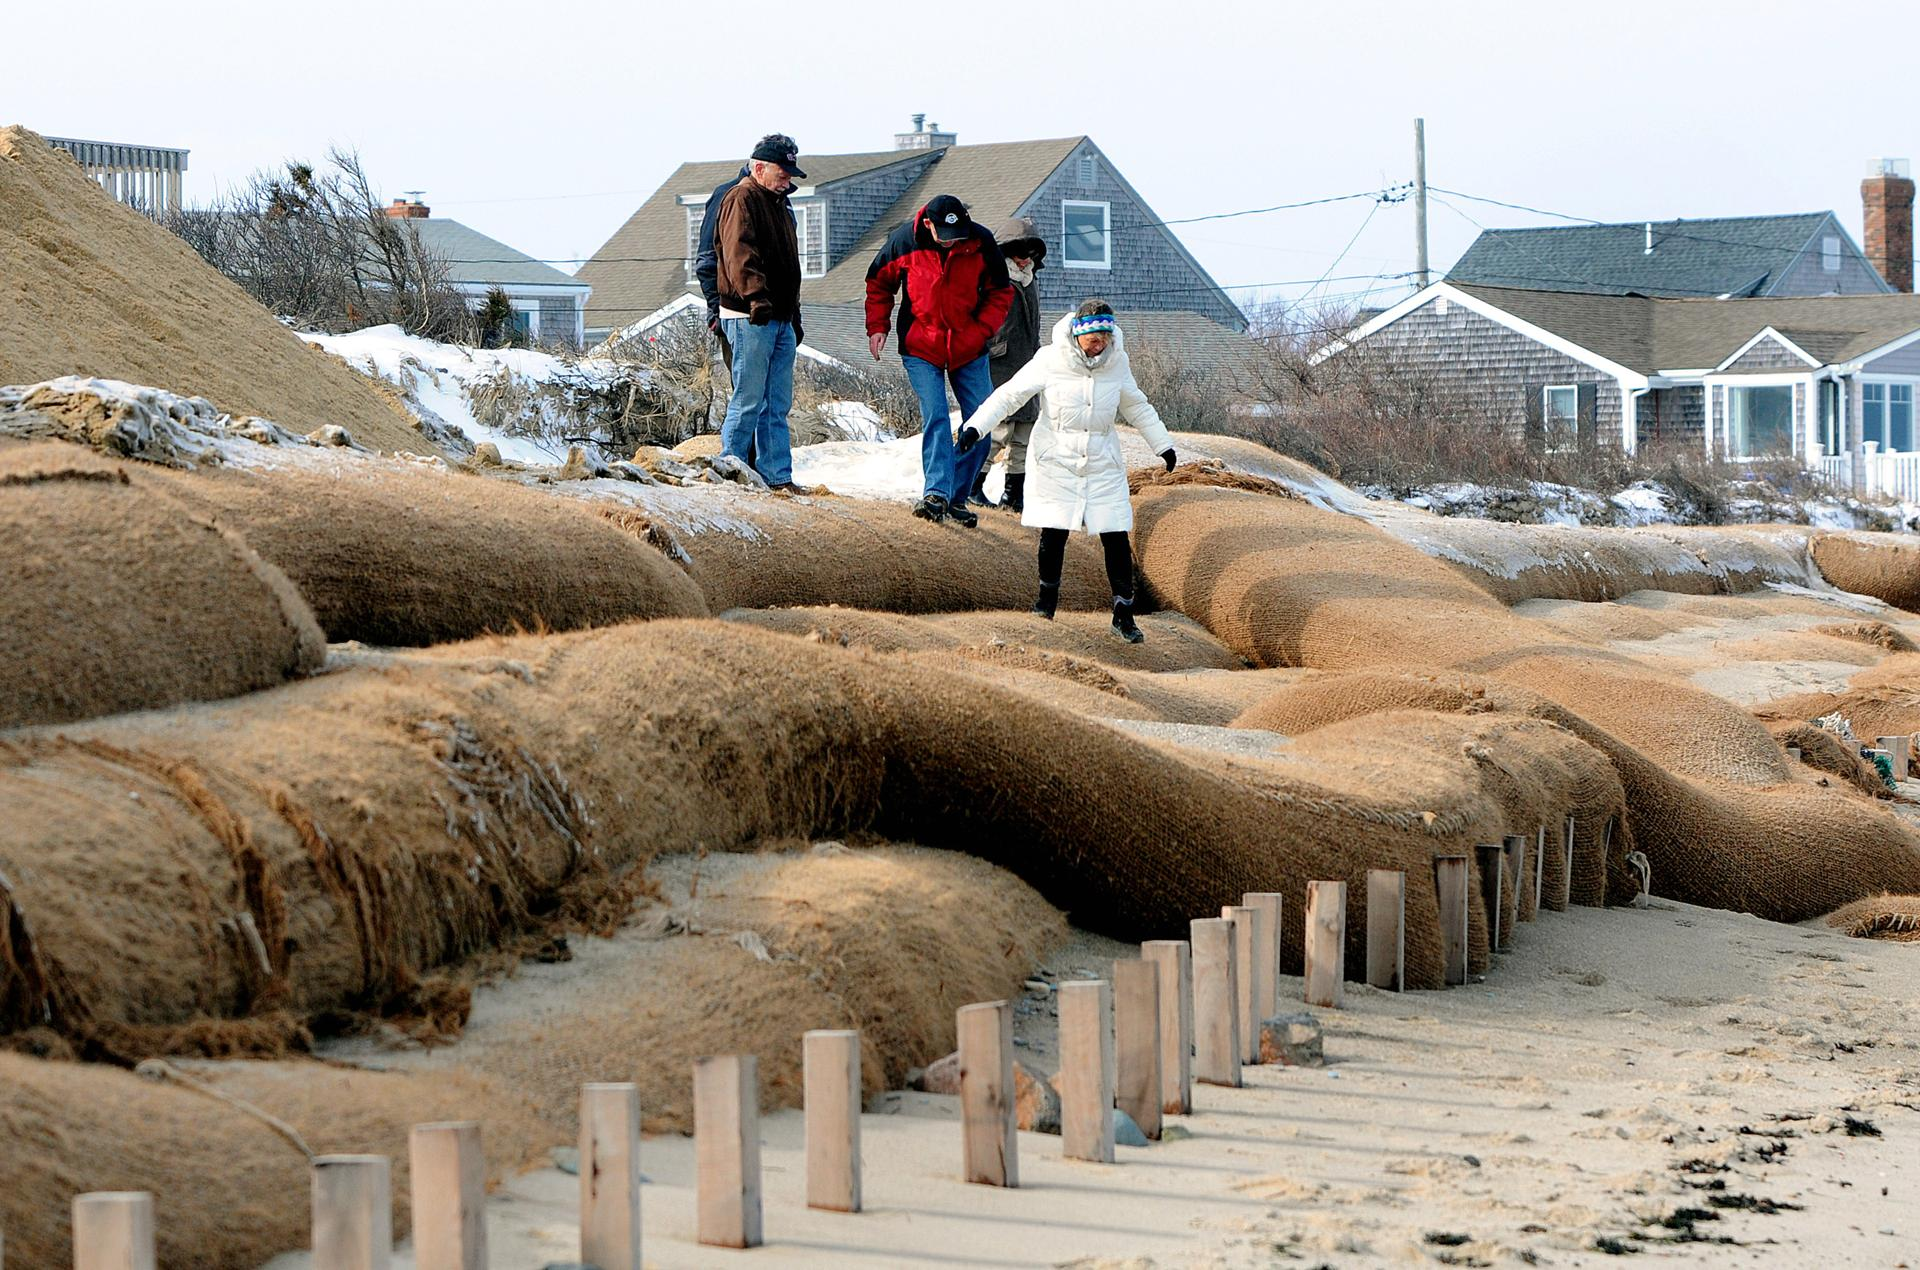 Ralph Hutchins, Bill Boles, Barbara Hutchins, and Cyndy Adamic walked over coir fiber logs in front of a home on Sandwich beach.